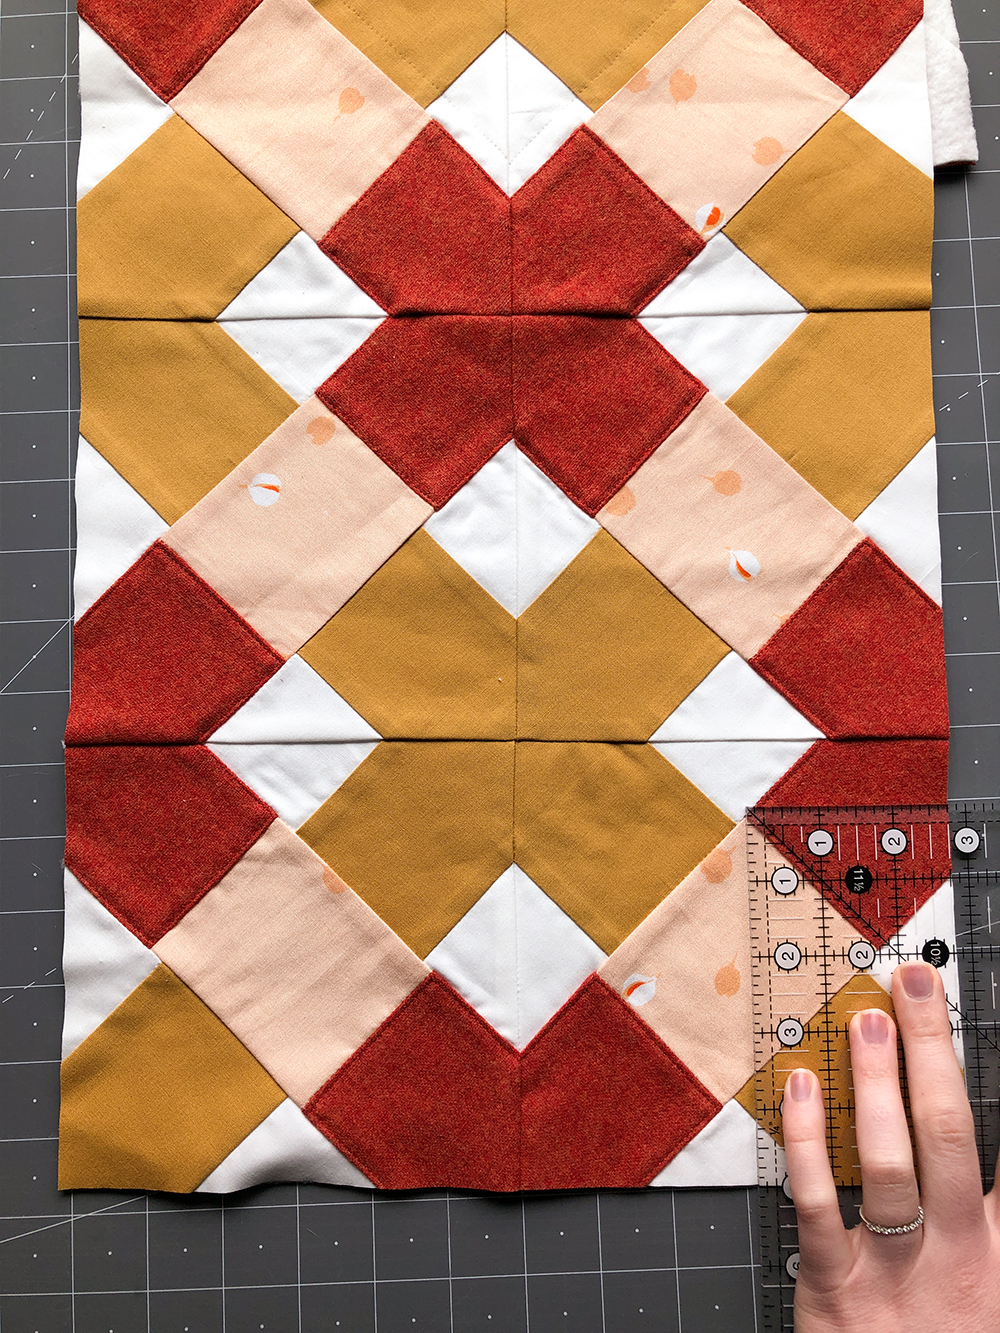 """Then, from each of the top corners, cut out a rectangle that measures 5"""" x 2 ¾"""", using the two raw edges as two sides of the rectangles. The 5"""" side of the cut rectangle should be parallel to the 30"""" side of the panel. This will create a flap for your lunch box that measures 6 ½"""" wide and 5"""" long. Check out the picture if you're more of a visual learner.  Repeat with your lining fabric so that you have a quilted panel and lining that are the same size and shape."""